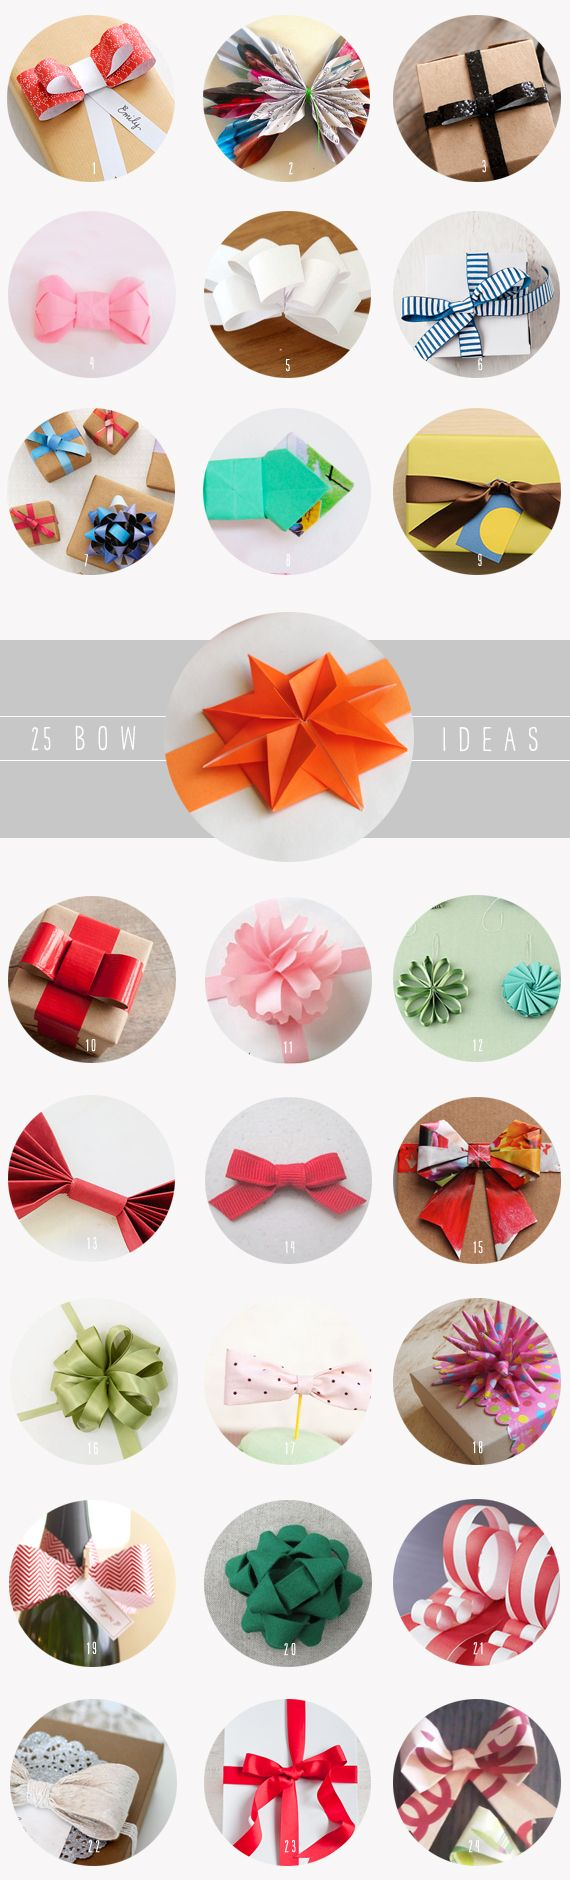 best wrapping images on pinterest diy presents gift wrapping